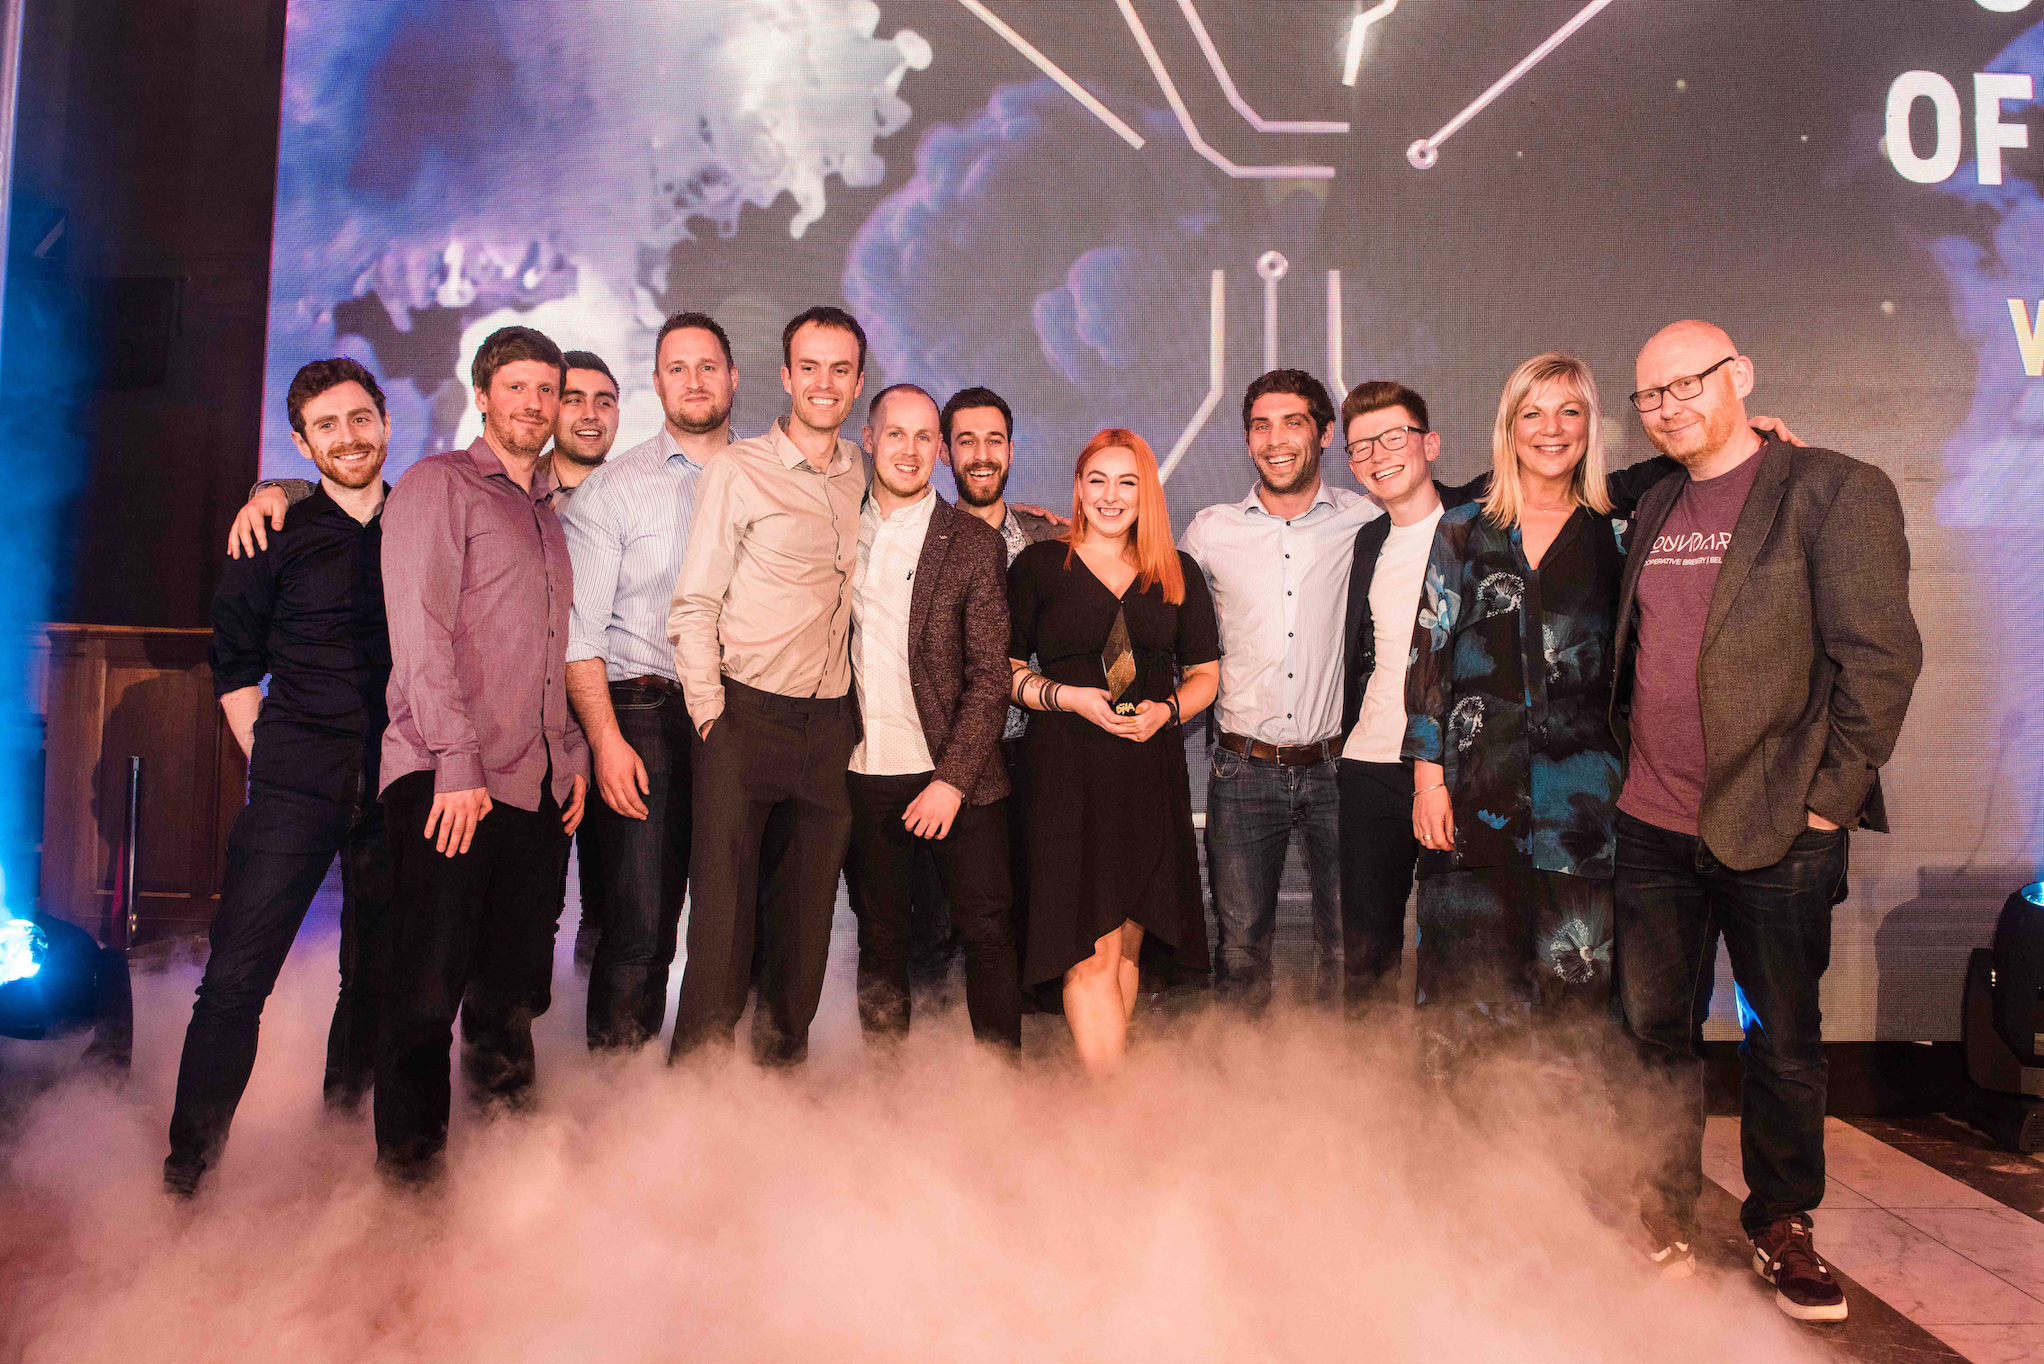 Whitespace_Company of the Year_Digital DNA Awards 2019_29.03.19.